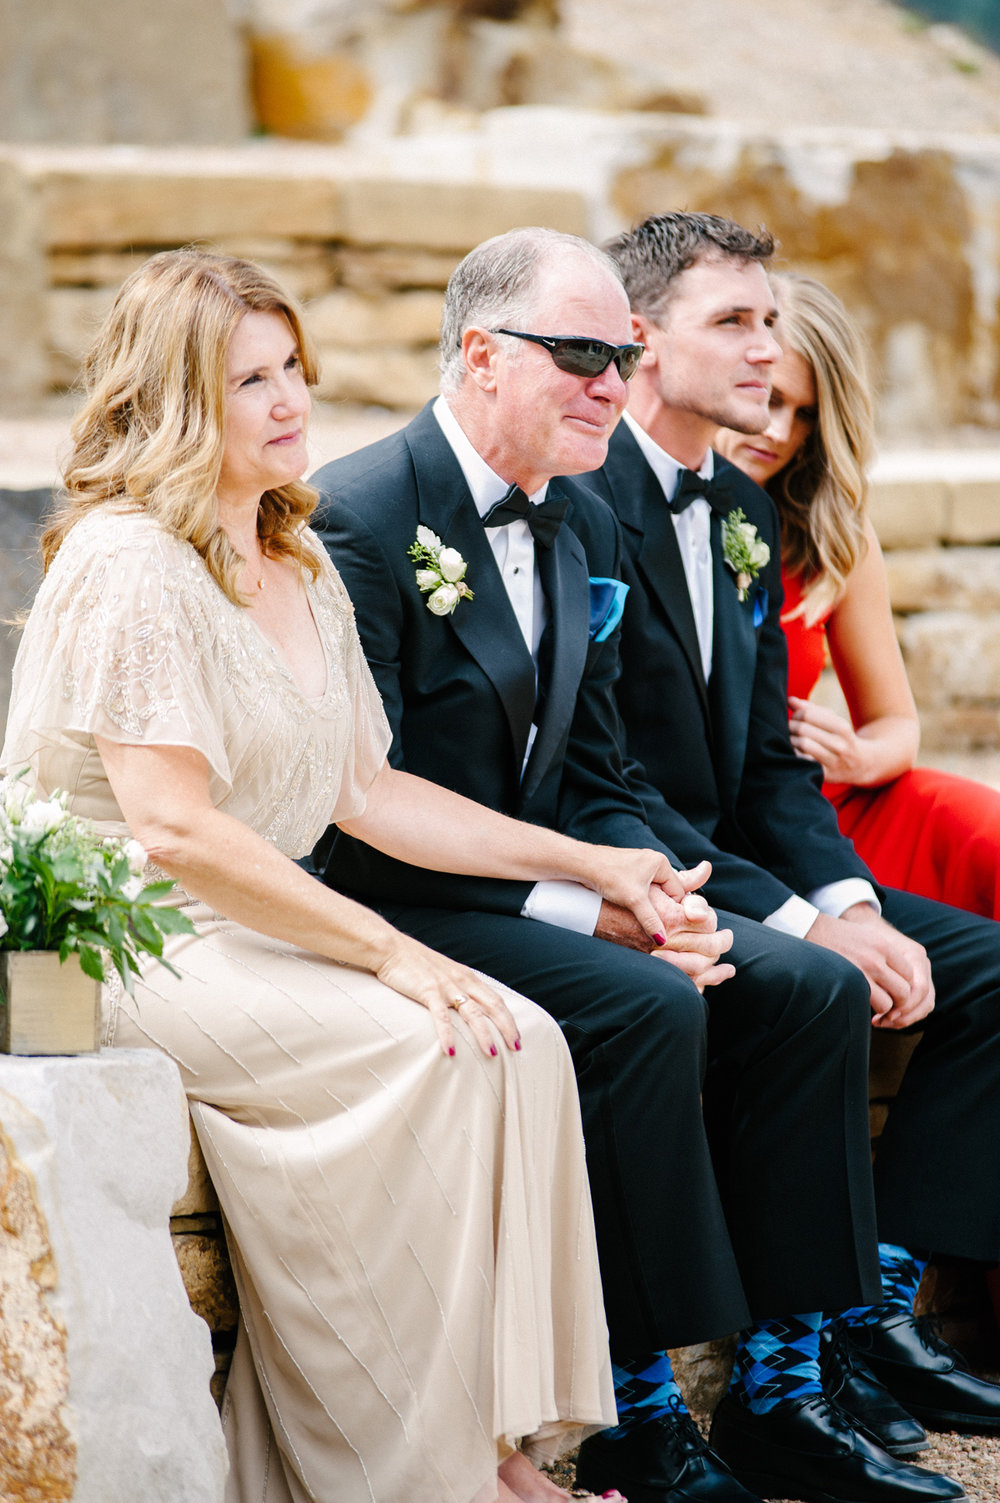 304-beaver-creek--mountain-top-wedding--vows--emotional.jpg